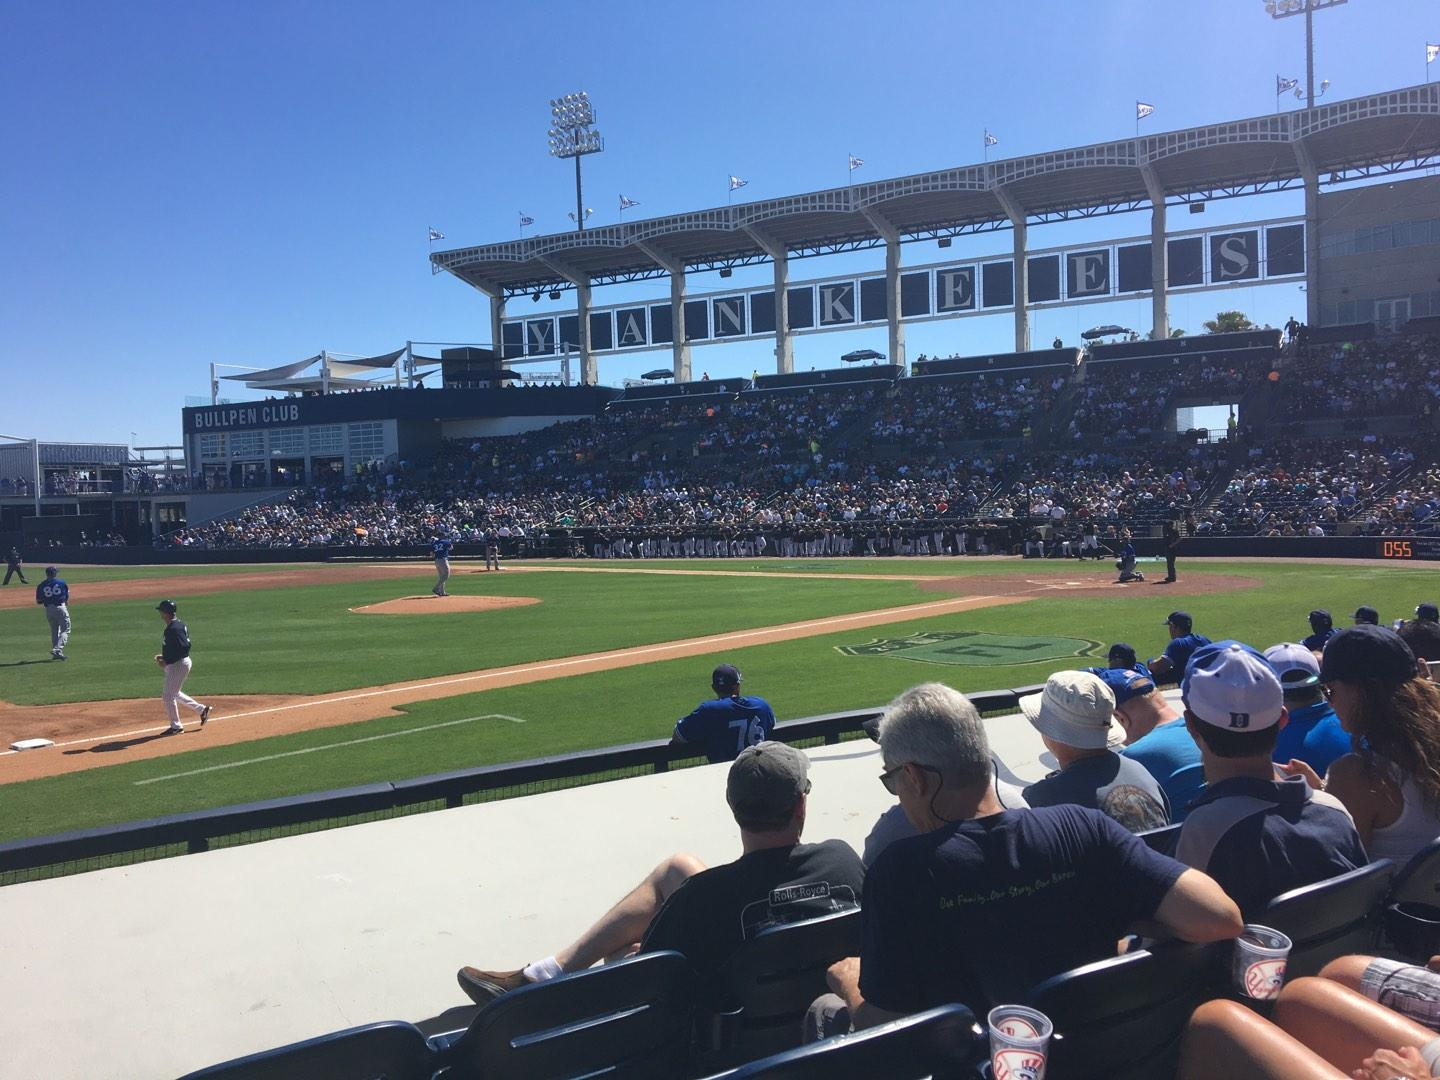 George M. Steinbrenner Field Section 117 Row GG Seat 9